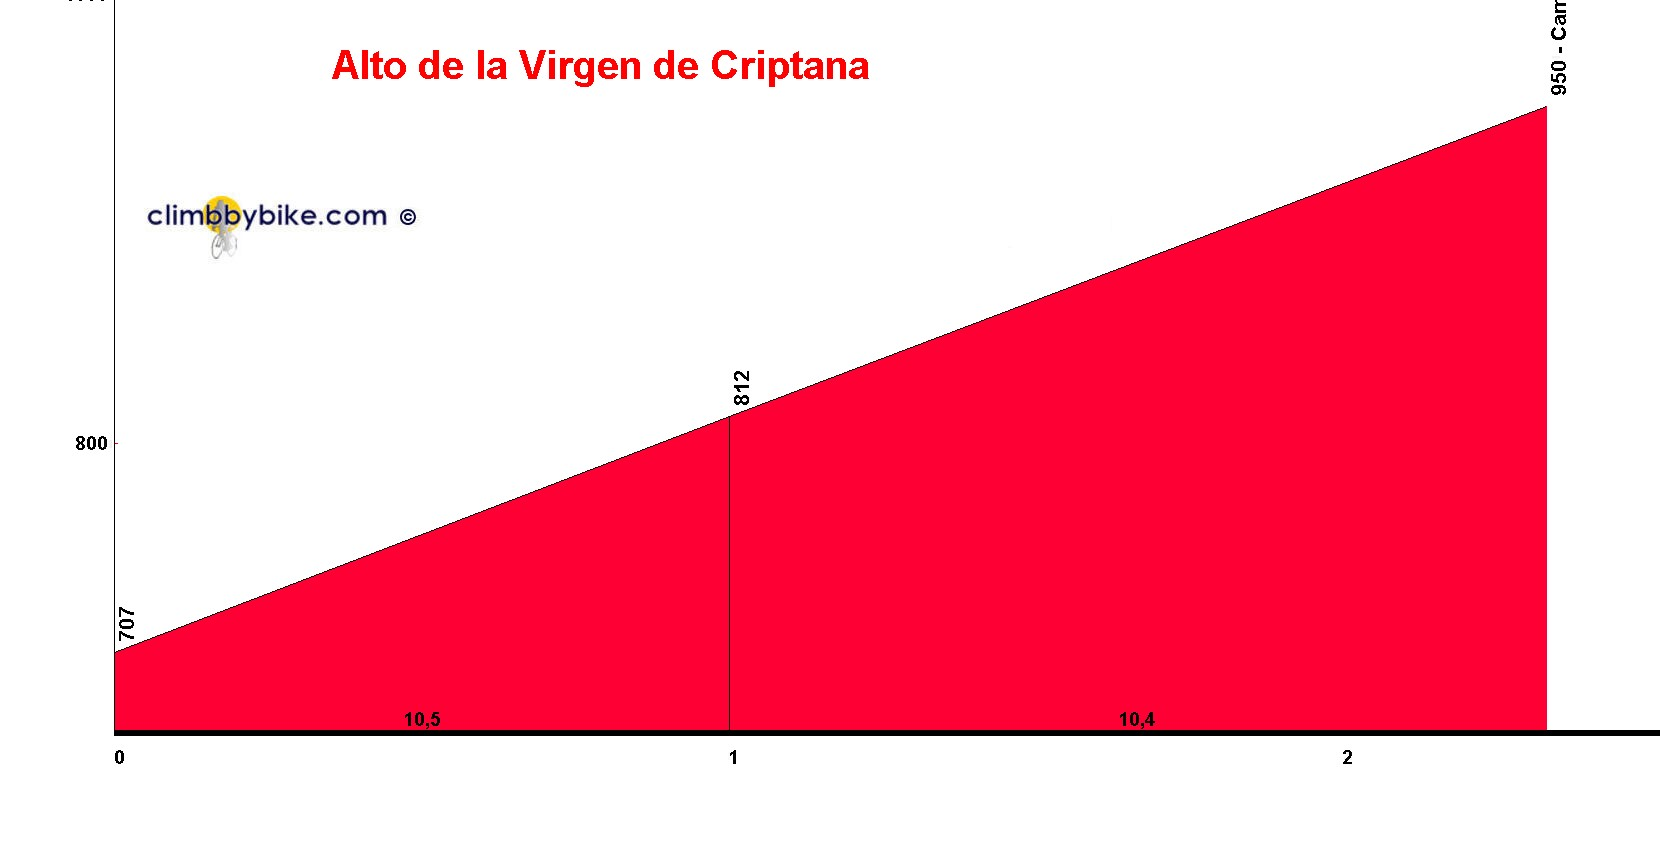 Elevation profile for Alto de la Virgen de Criptana